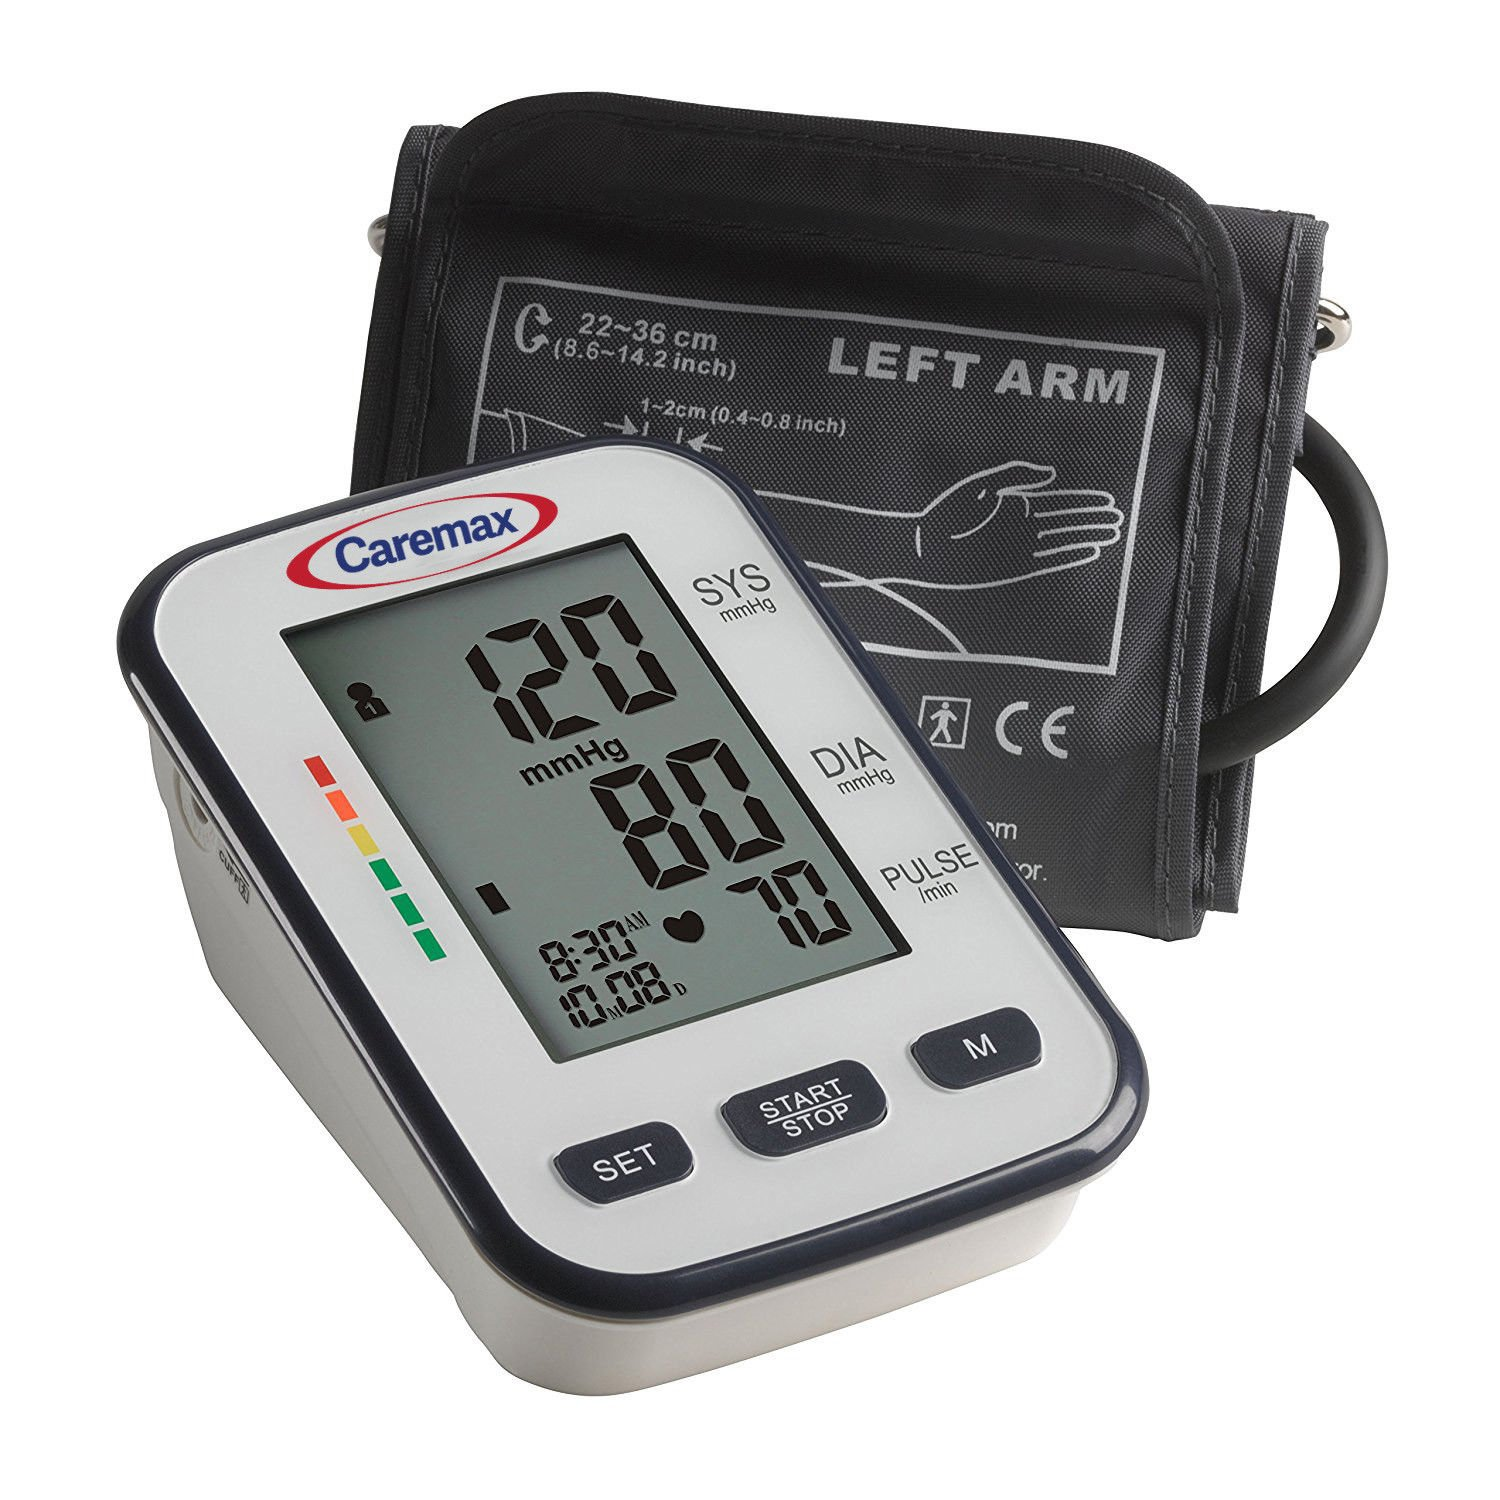 Caremax Upper Arm Blood Pressure Monitor Automatic Digital Blood Pressure Cuff Machine One Size Fits All Cuff, Easy to Read and Calculation Accuracy – FDA Approved